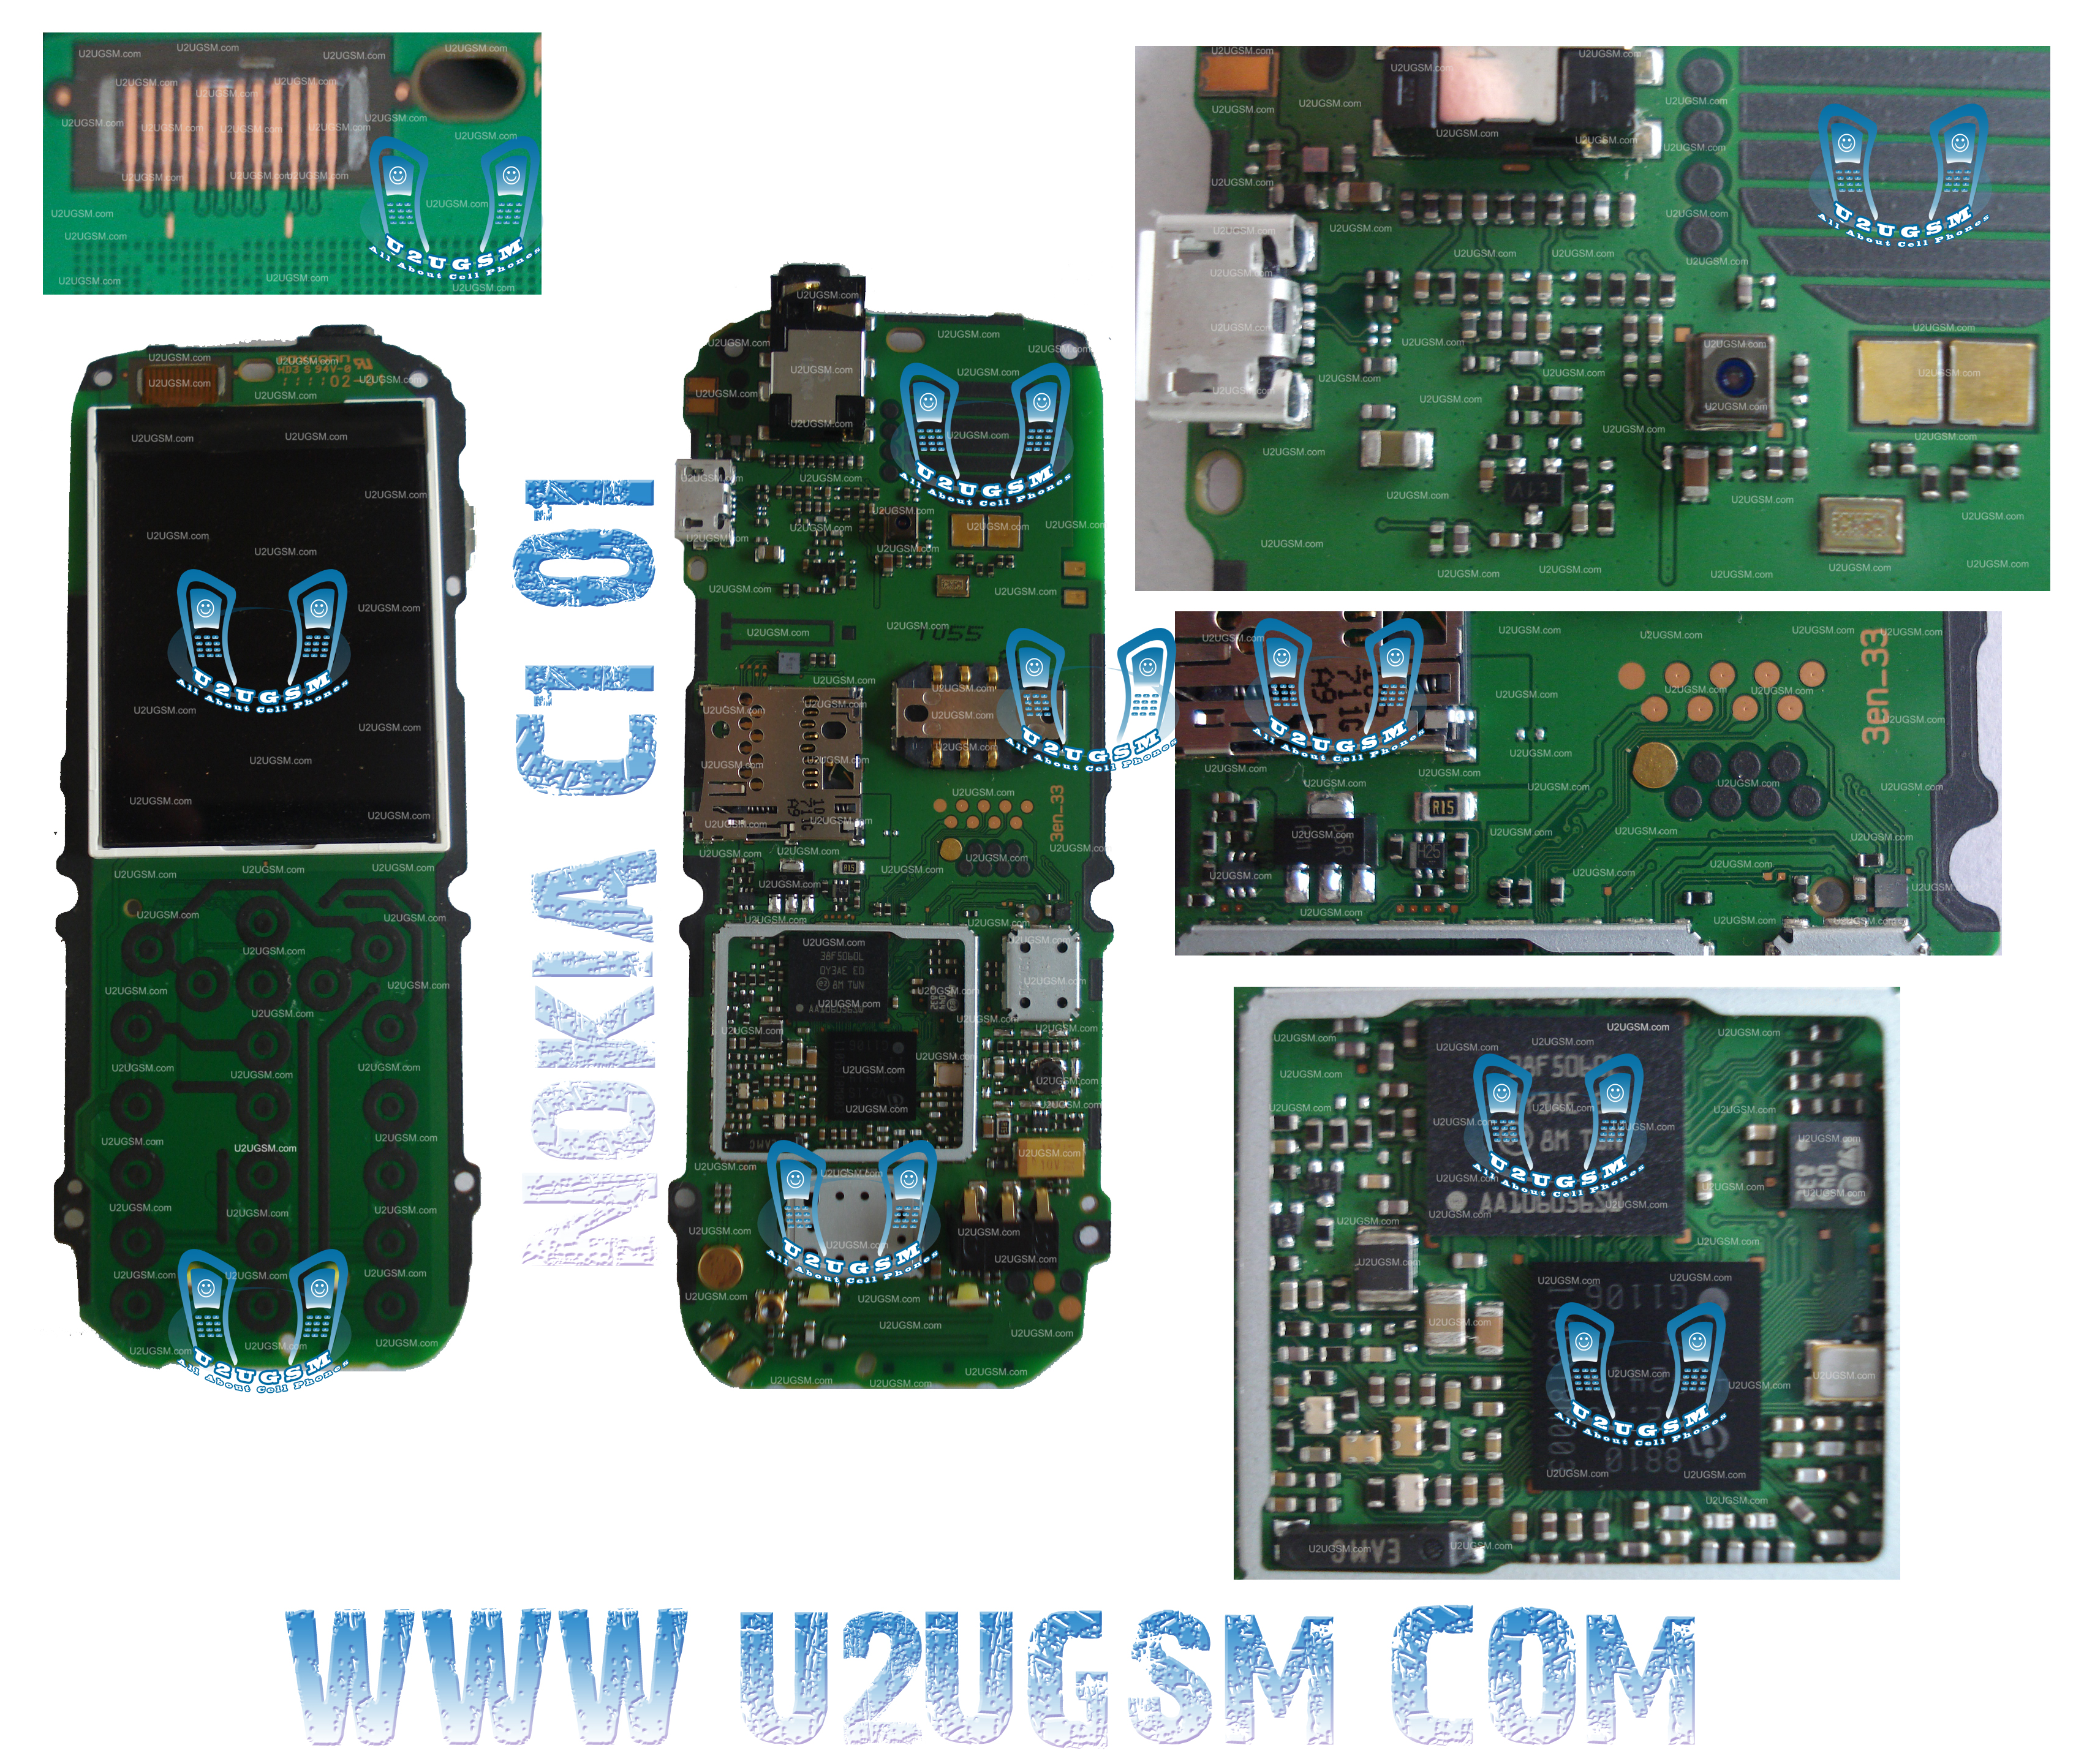 Nokia C1 01 Full Pcb Diagram Mother Board Layout Mobile Repairing Htc Desire S Circuit Download High Resolution Of